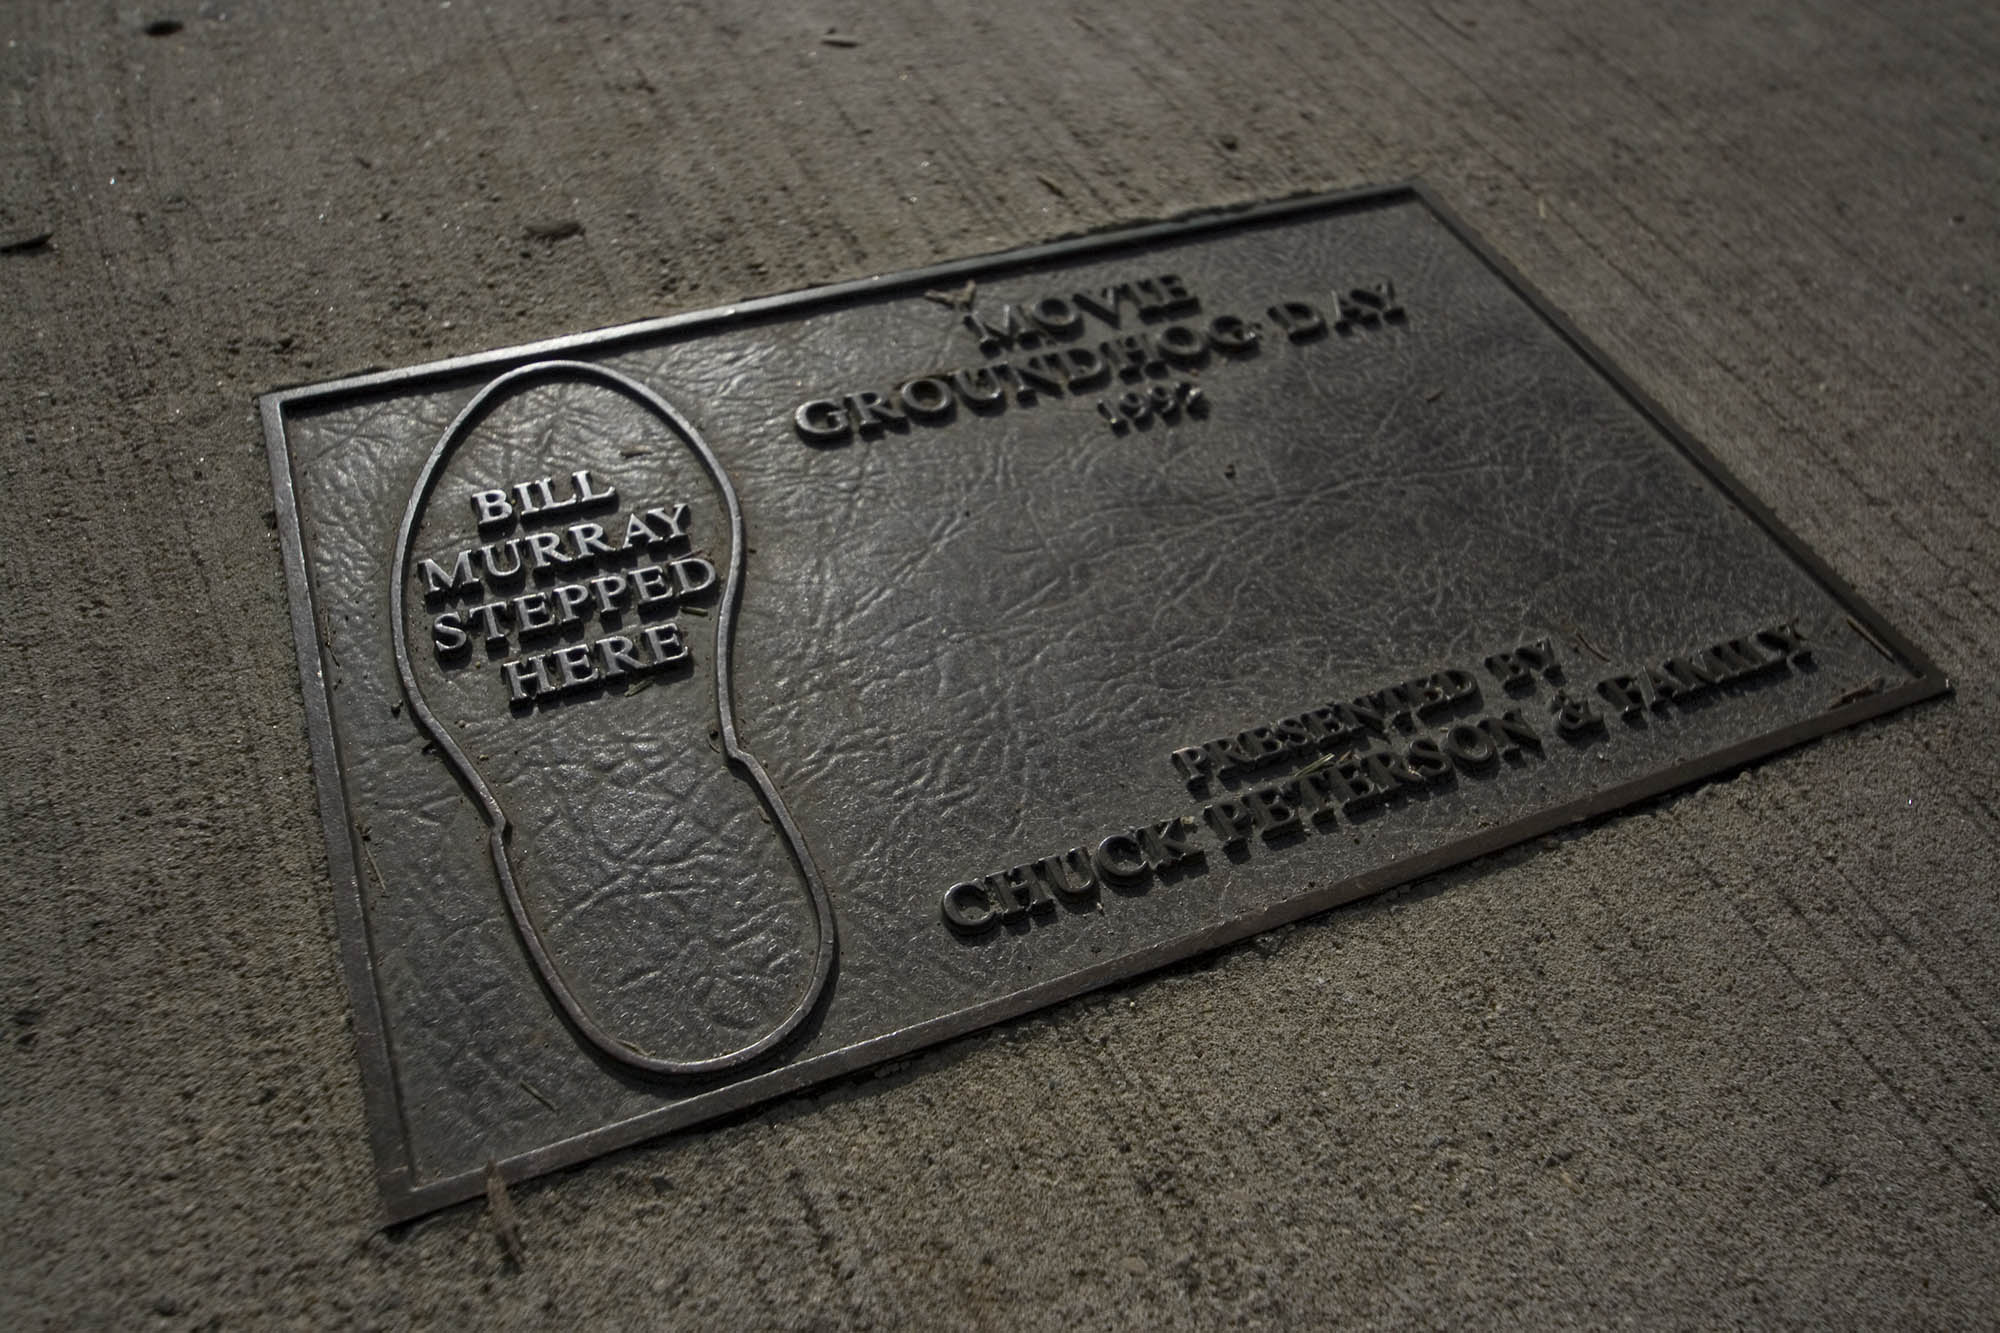 Bill Murray stepped here plaque in Woodstock, Illinois - the town where the movie Groundhog Day was filmed.